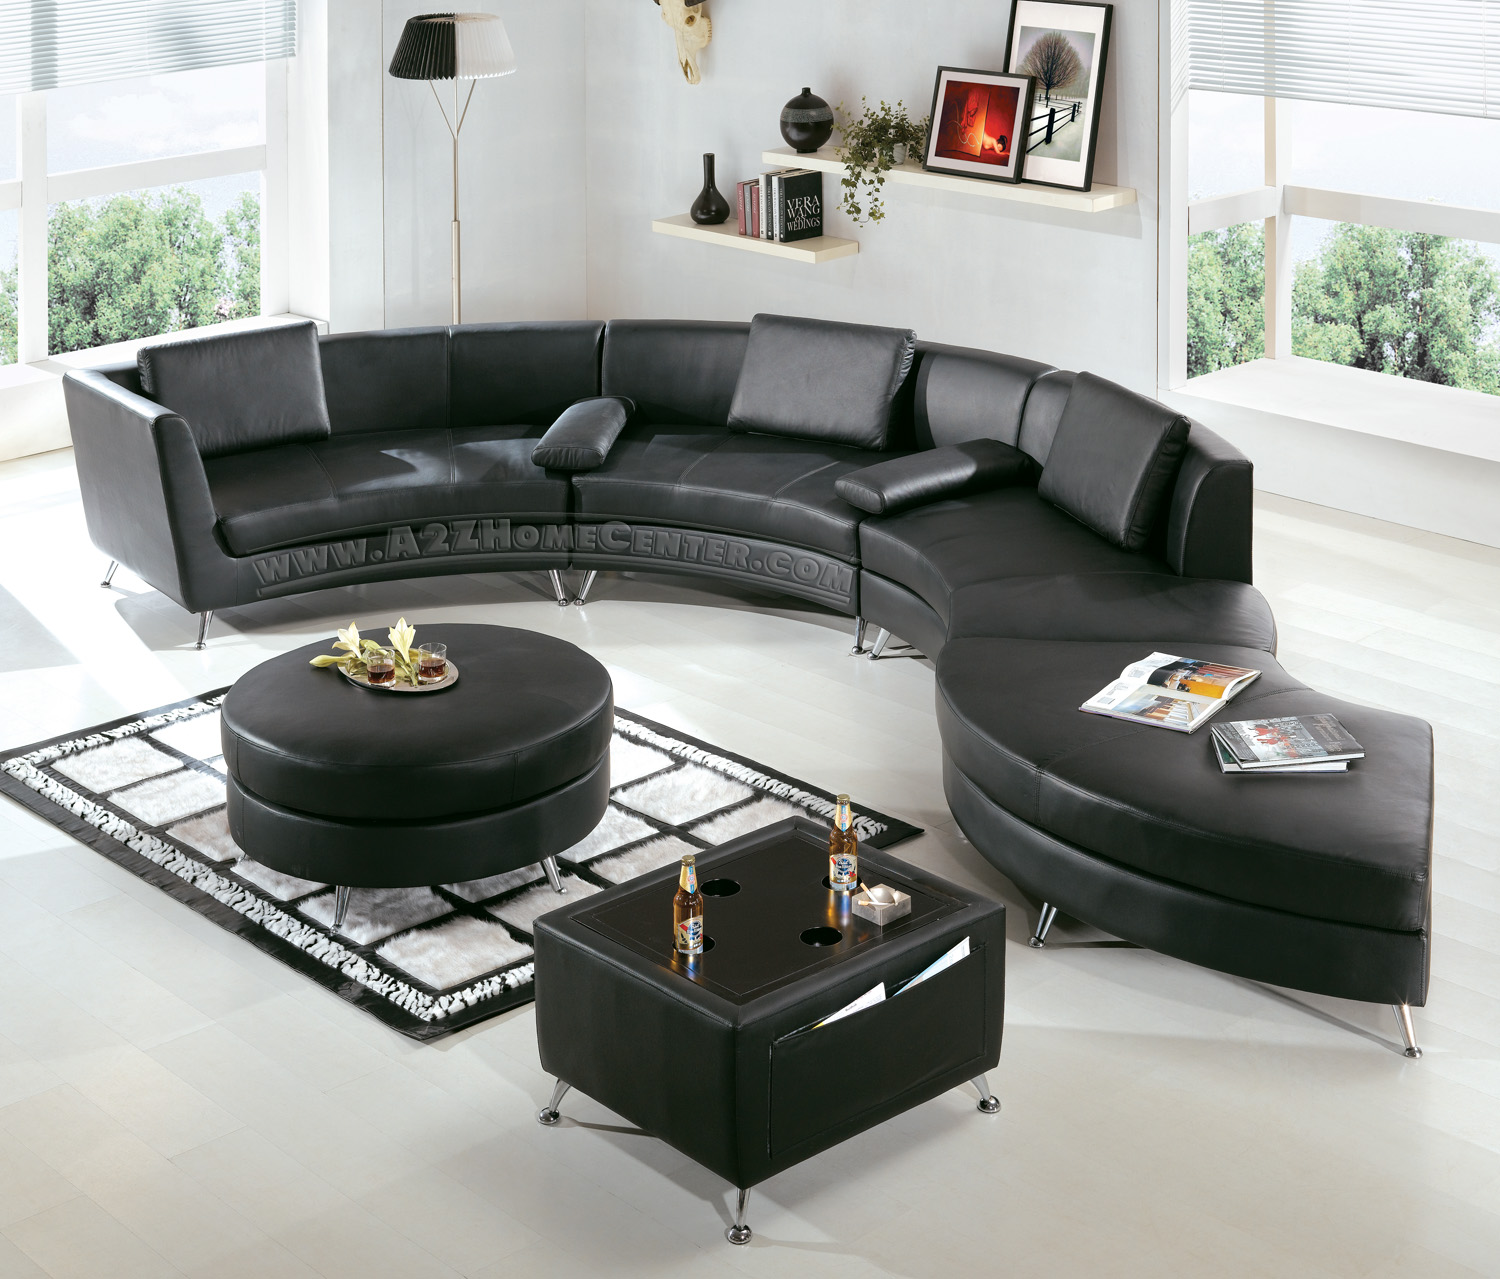 Trend home interior design 2011 modern furniture sofa variety ideas - Home furniture design photos ...